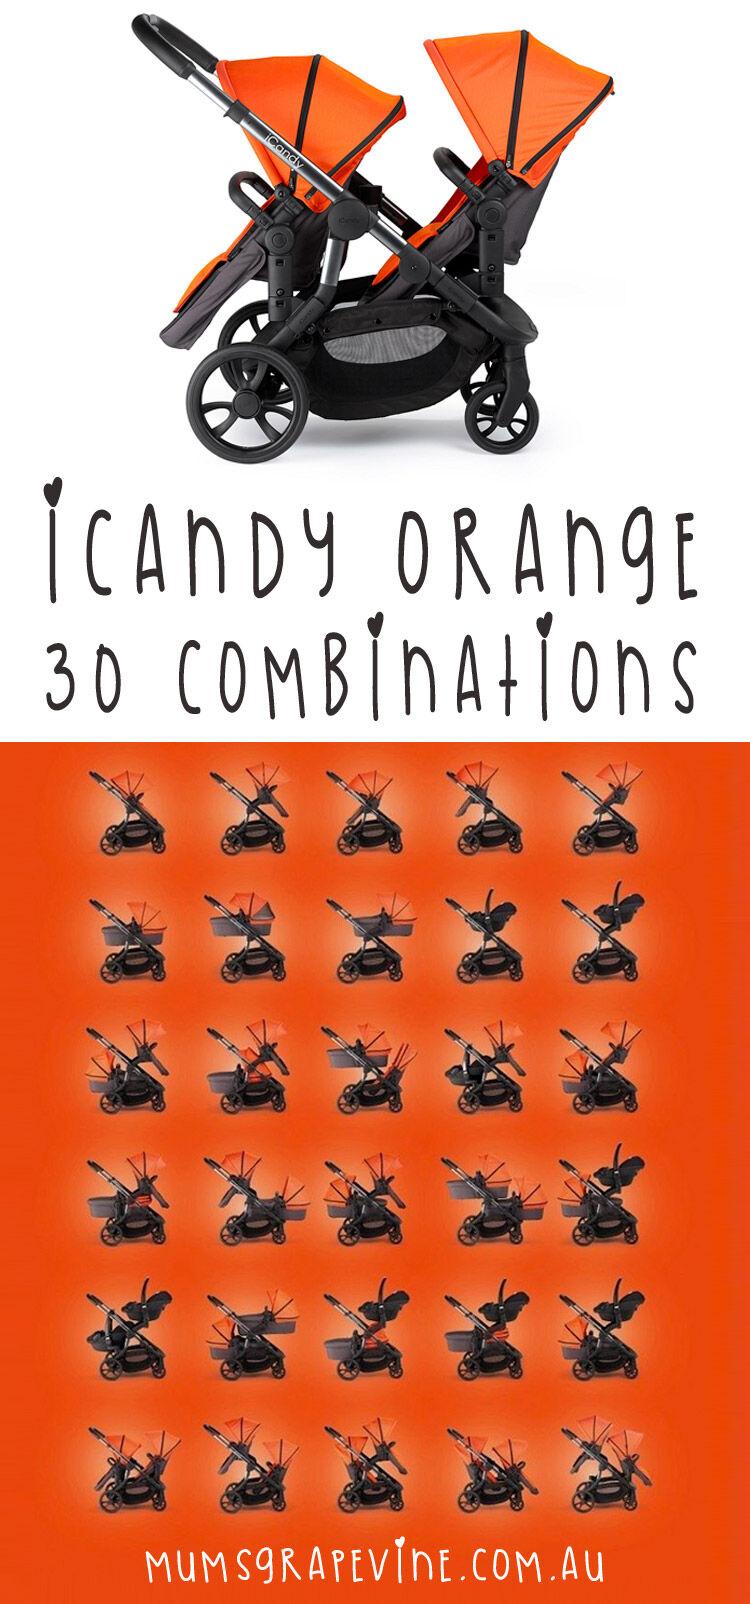 iCandy Orange combinations